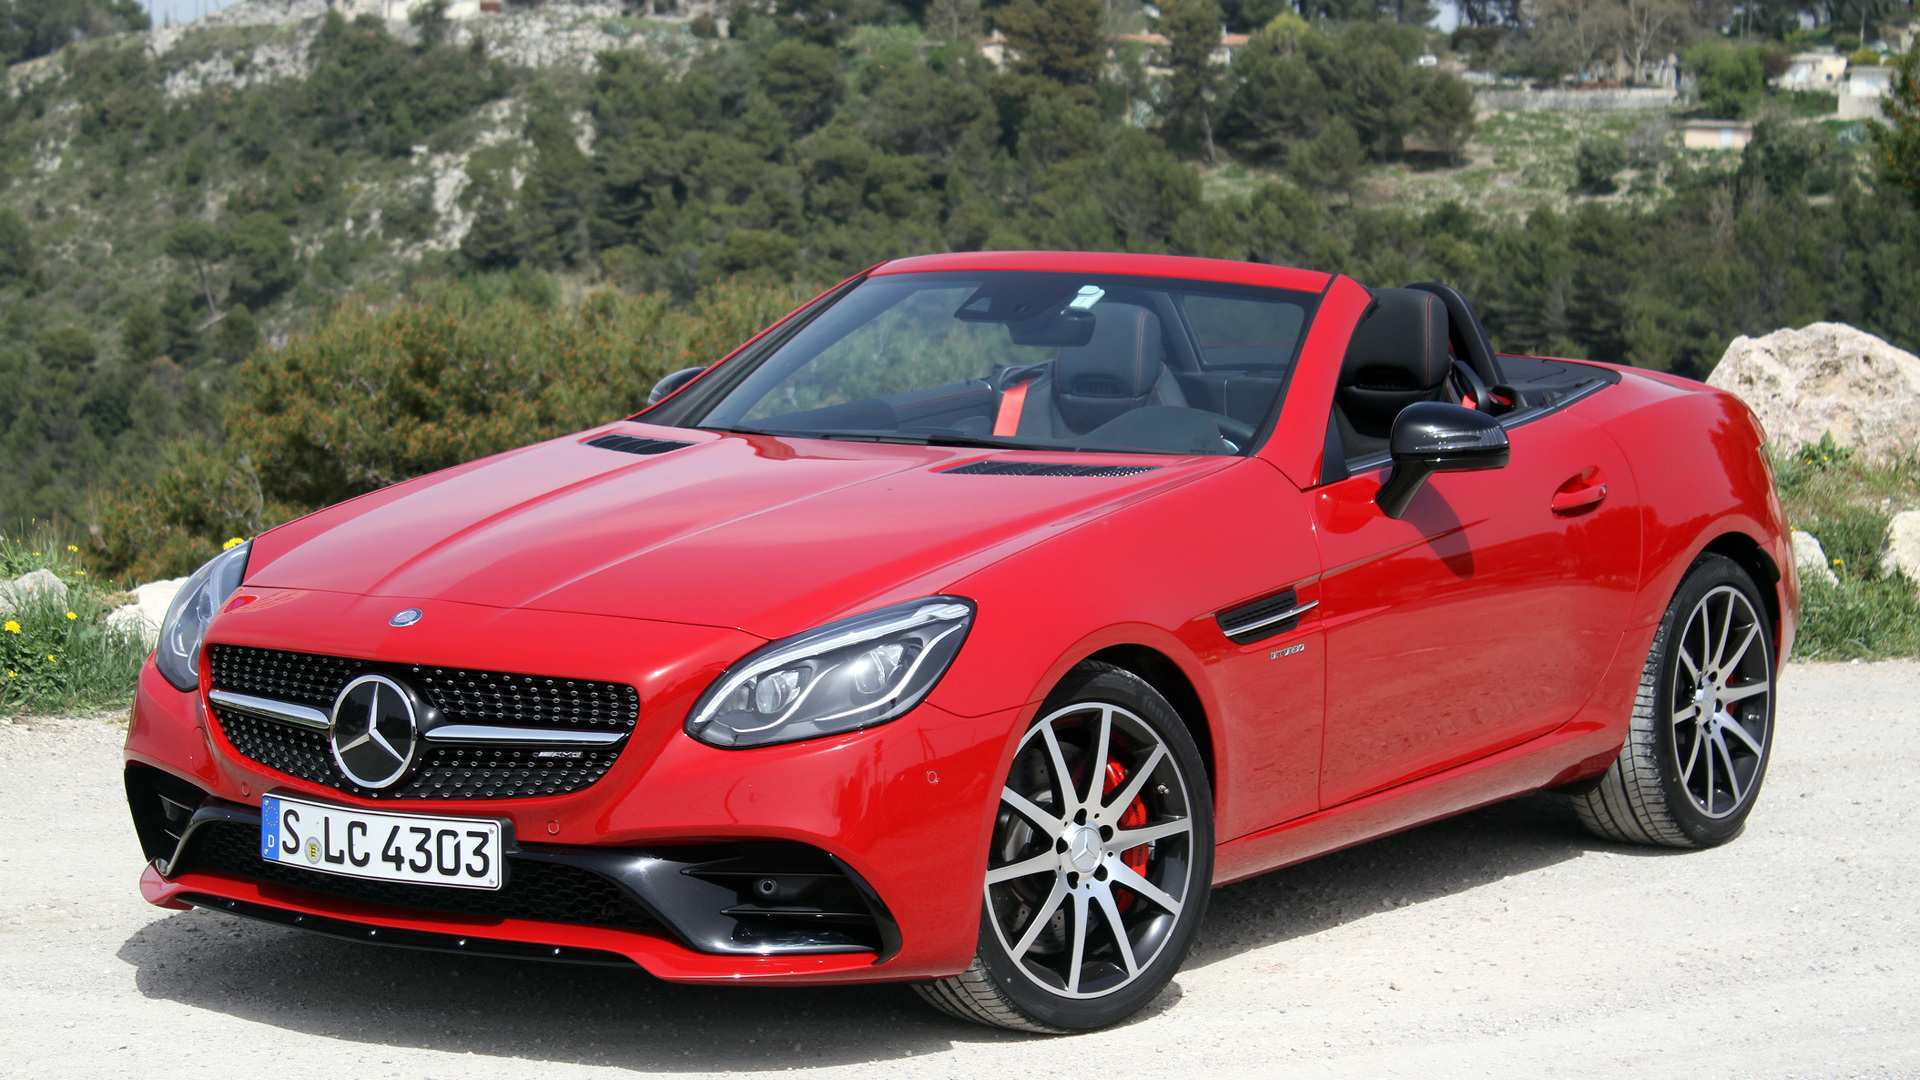 73 All New Mercedes 2020 Slc Price by Mercedes 2020 Slc